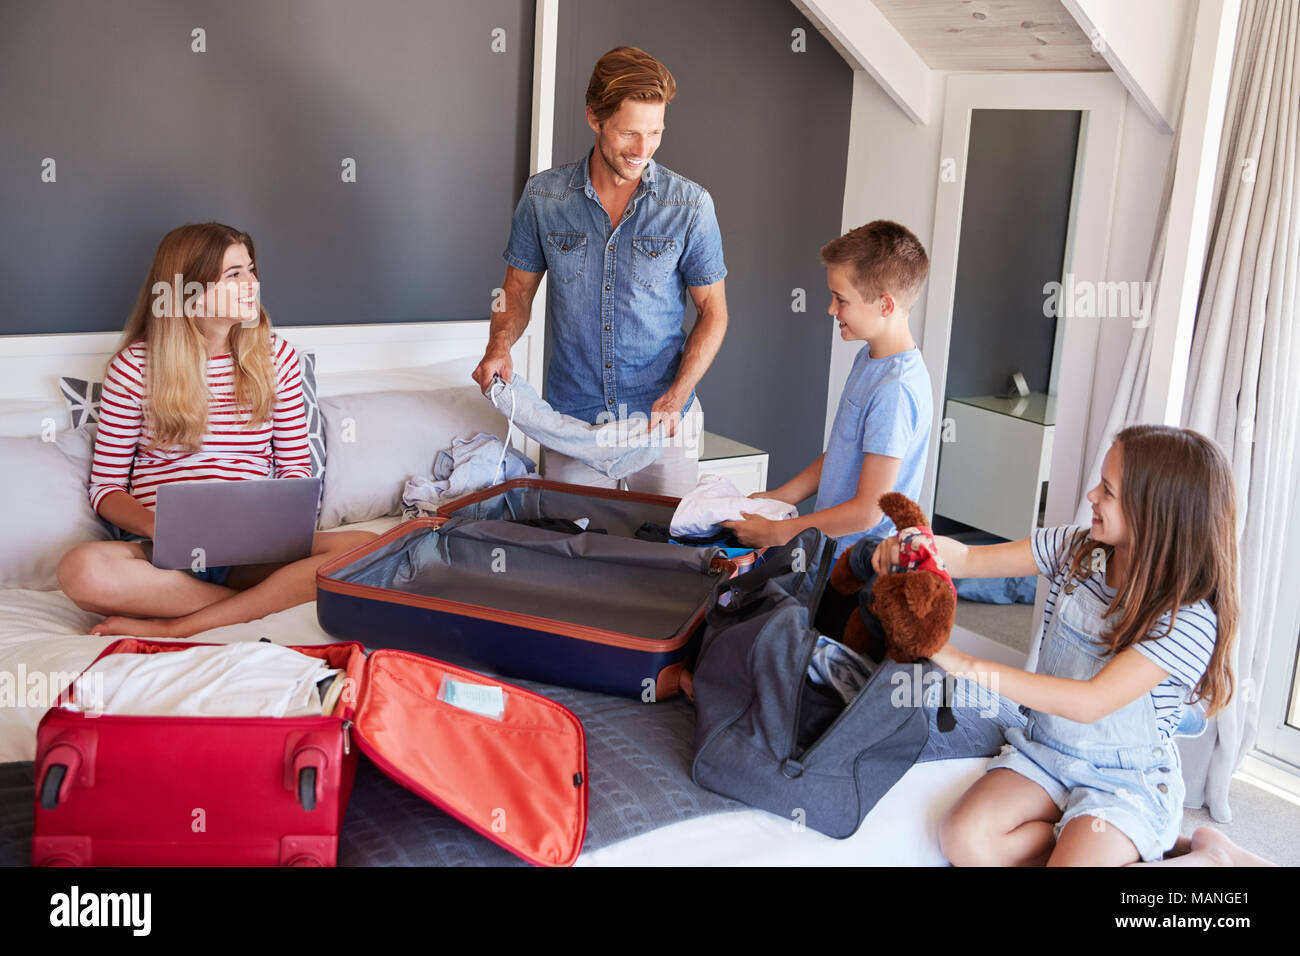 Family In Bedroom Pack Suitcases For Vacation And Use Laptop - Stock Image